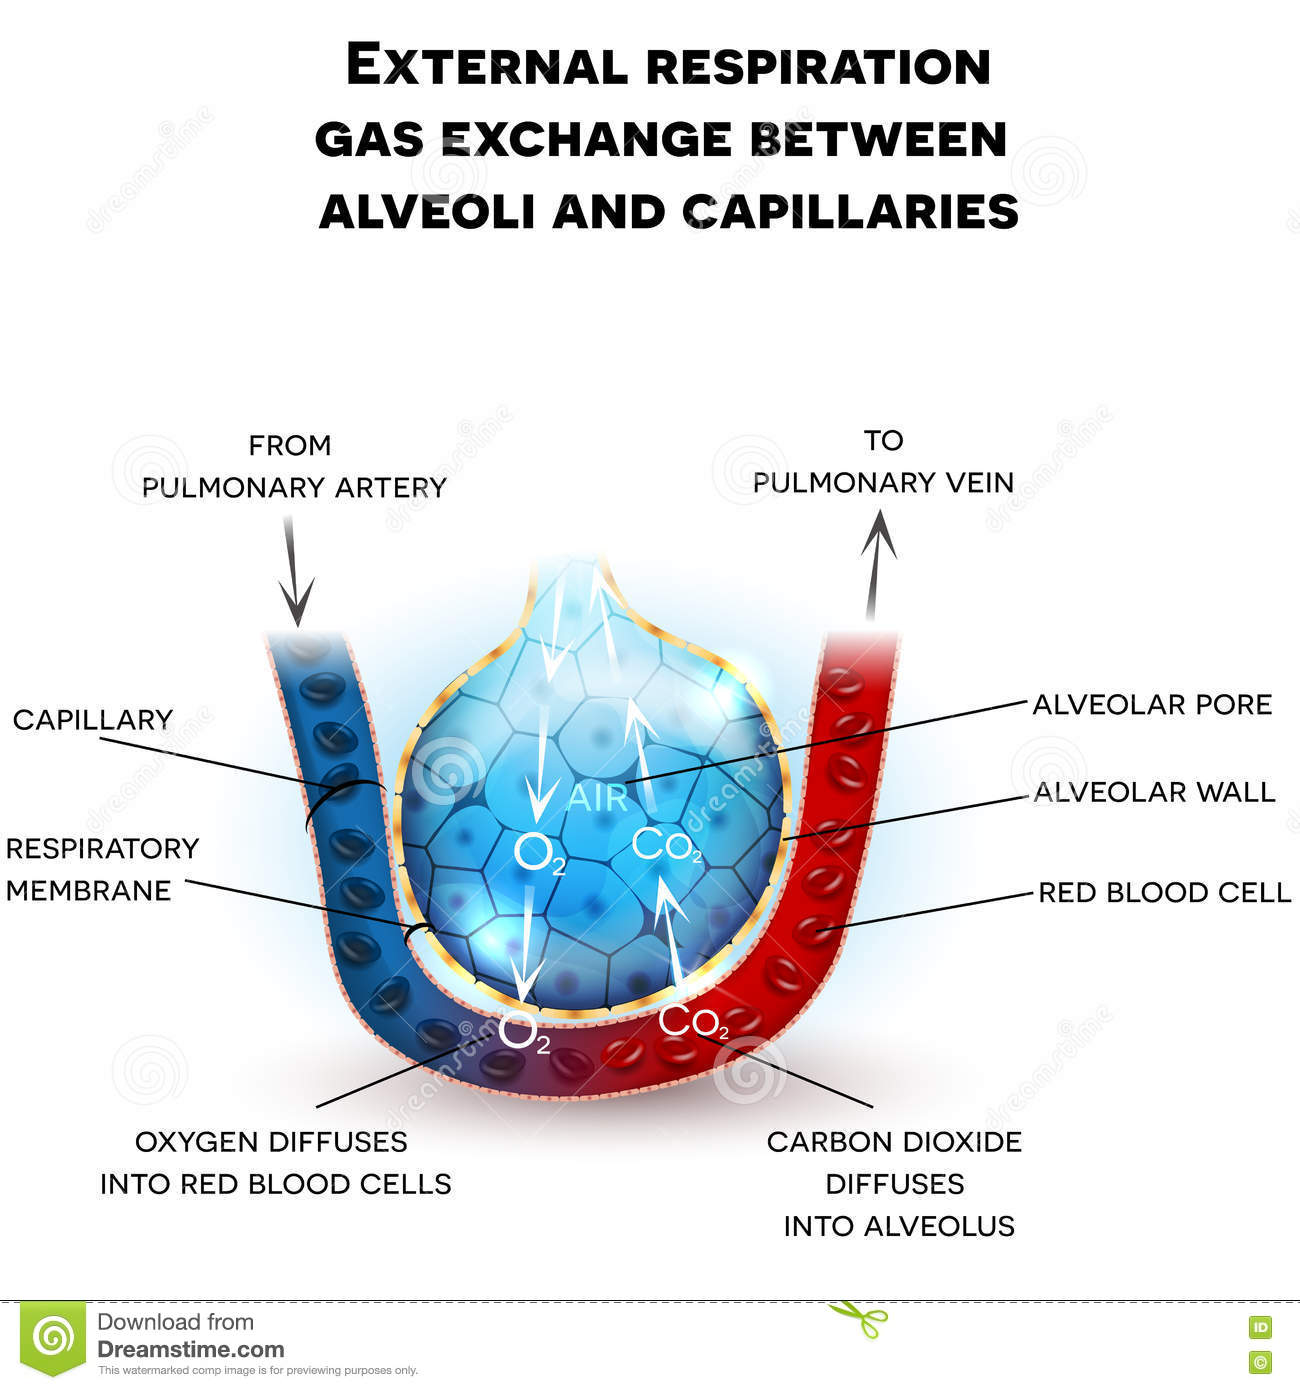 gas exchange Gas exchange we need to get oxygen from the air into the blood, and we need to remove waste carbon dioxide from the blood into the air moving gases like this is called gas exchange.